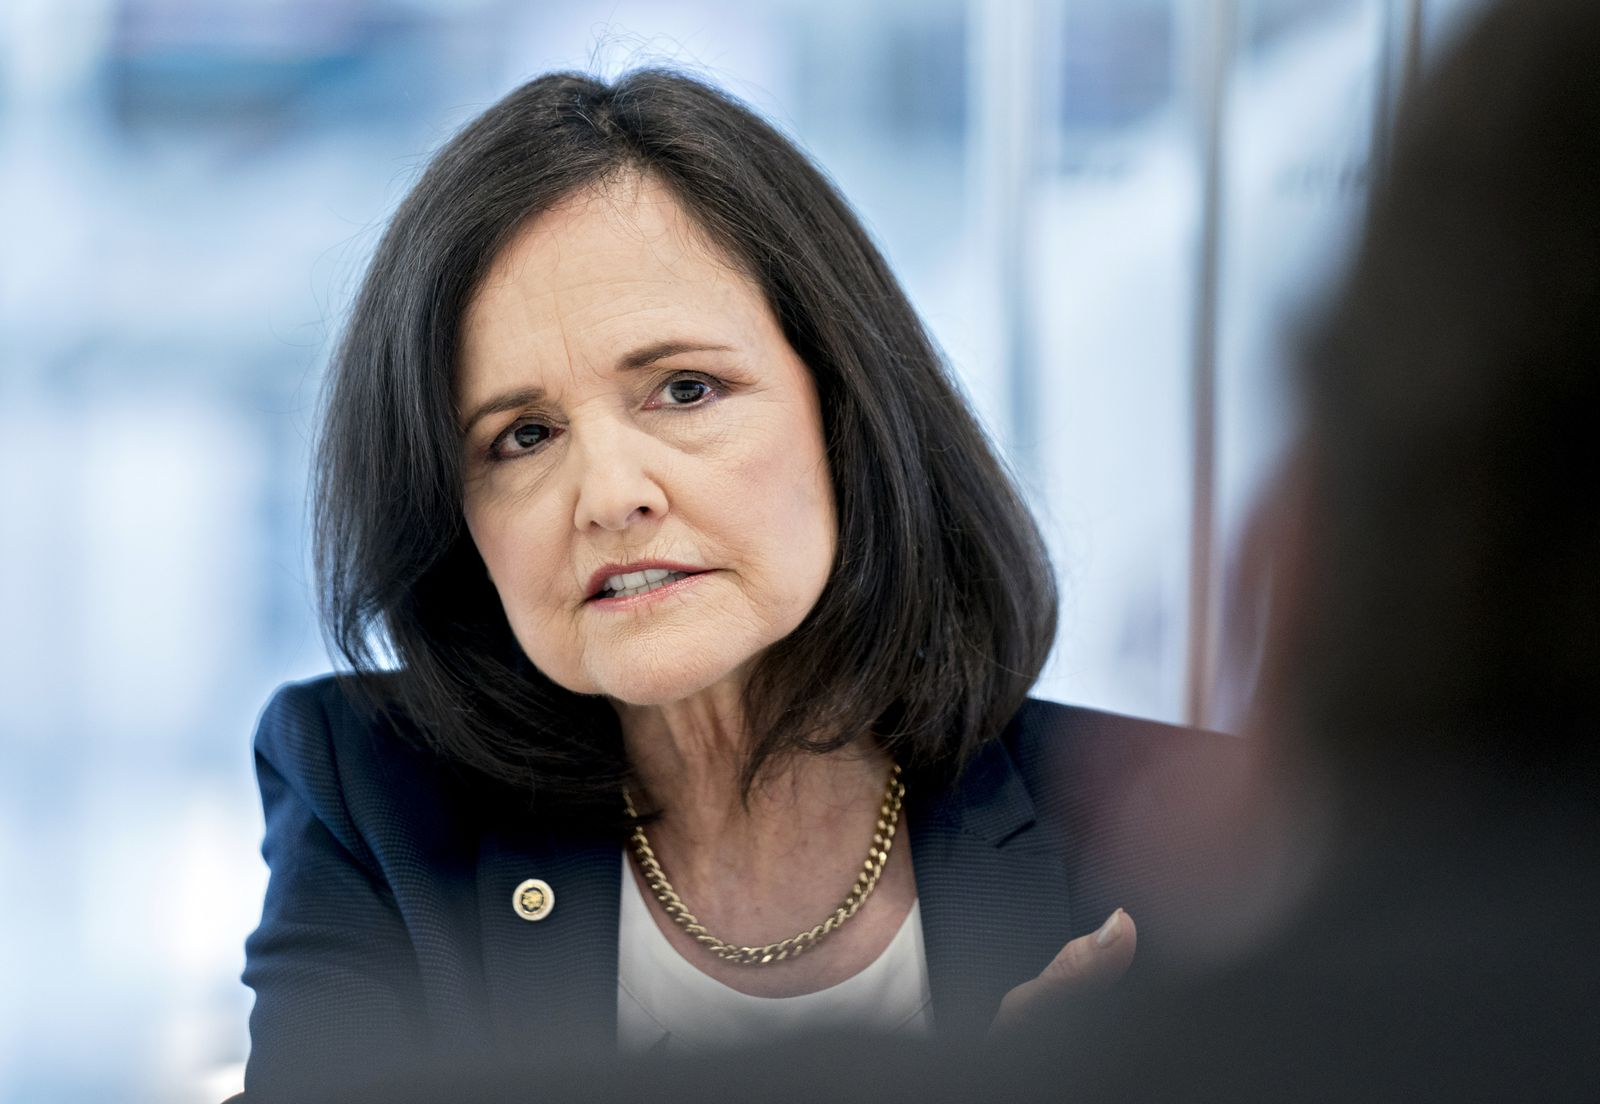 European Bank For Reconstruction And Development U.S. Executive Director Judy Shelton Interview